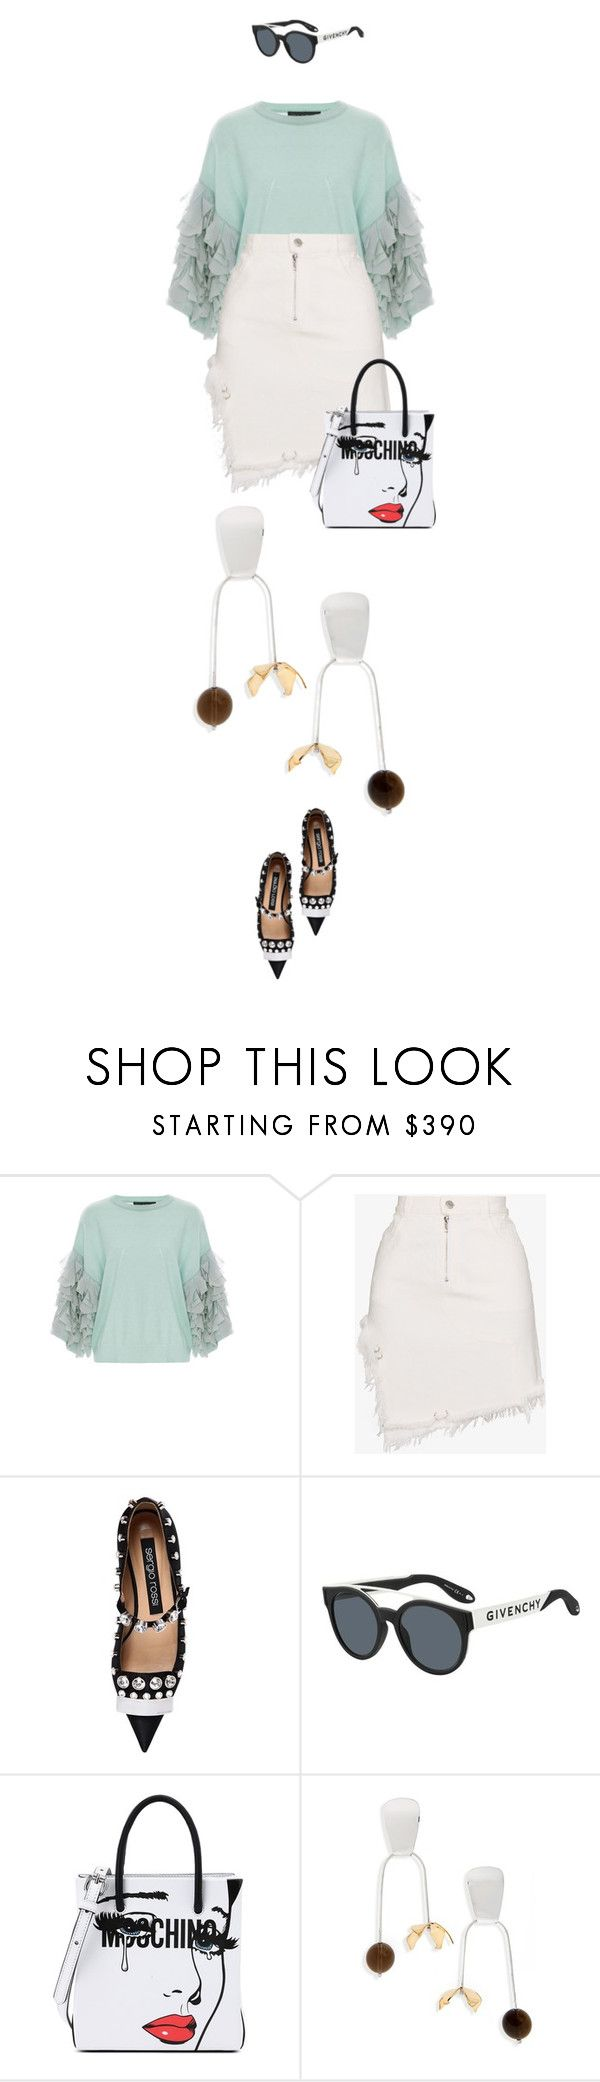 """eva2191"" by evava-c on Polyvore featuring Tabula Rasa, Sandy Liang, Sergio Rossi, Givenchy, Moschino and FARIS"